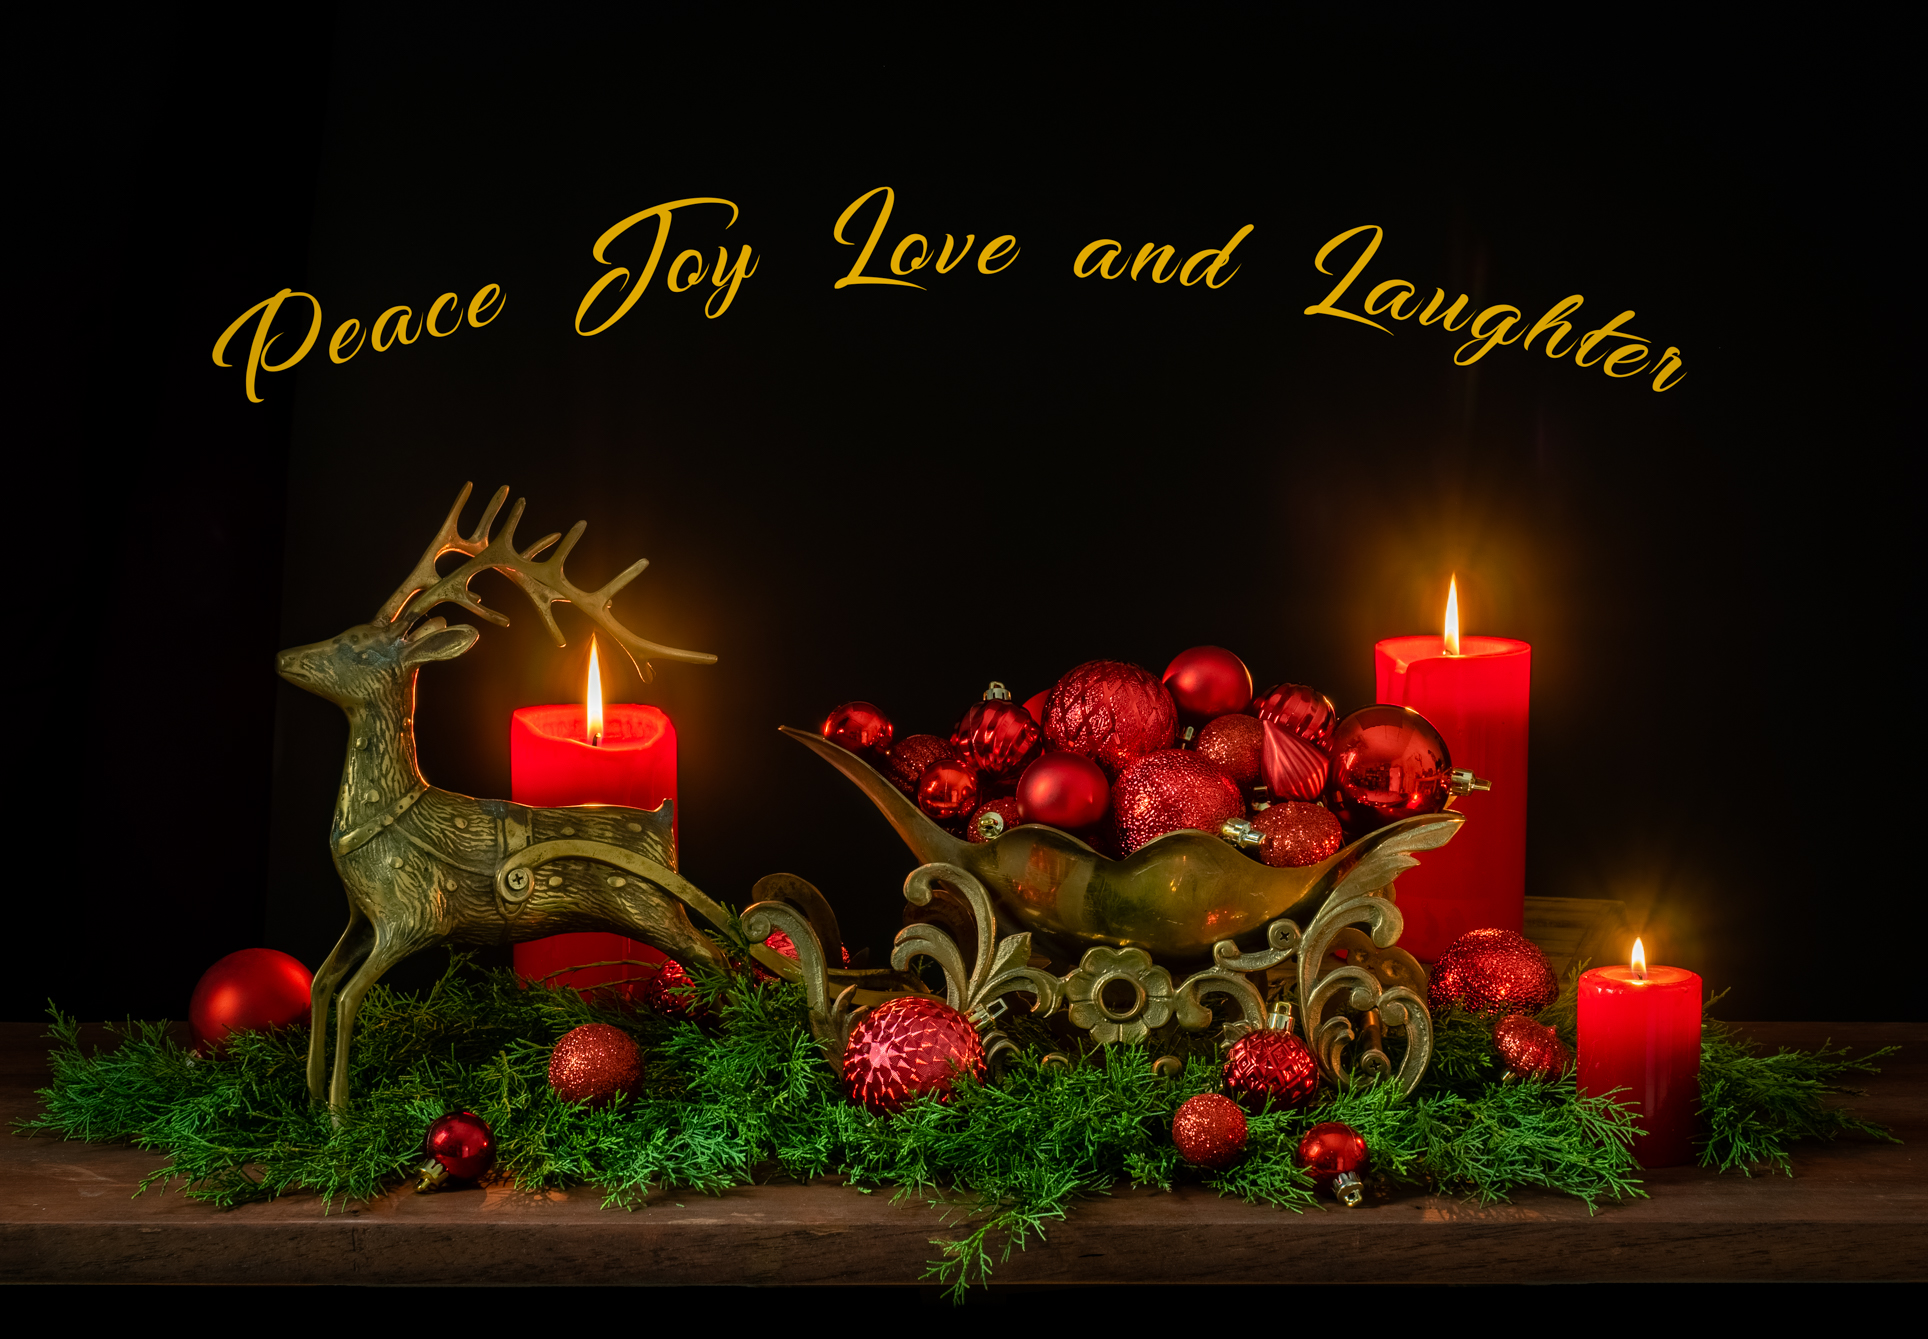 Happy Holidays - Peace, Joy, Love and Laughter